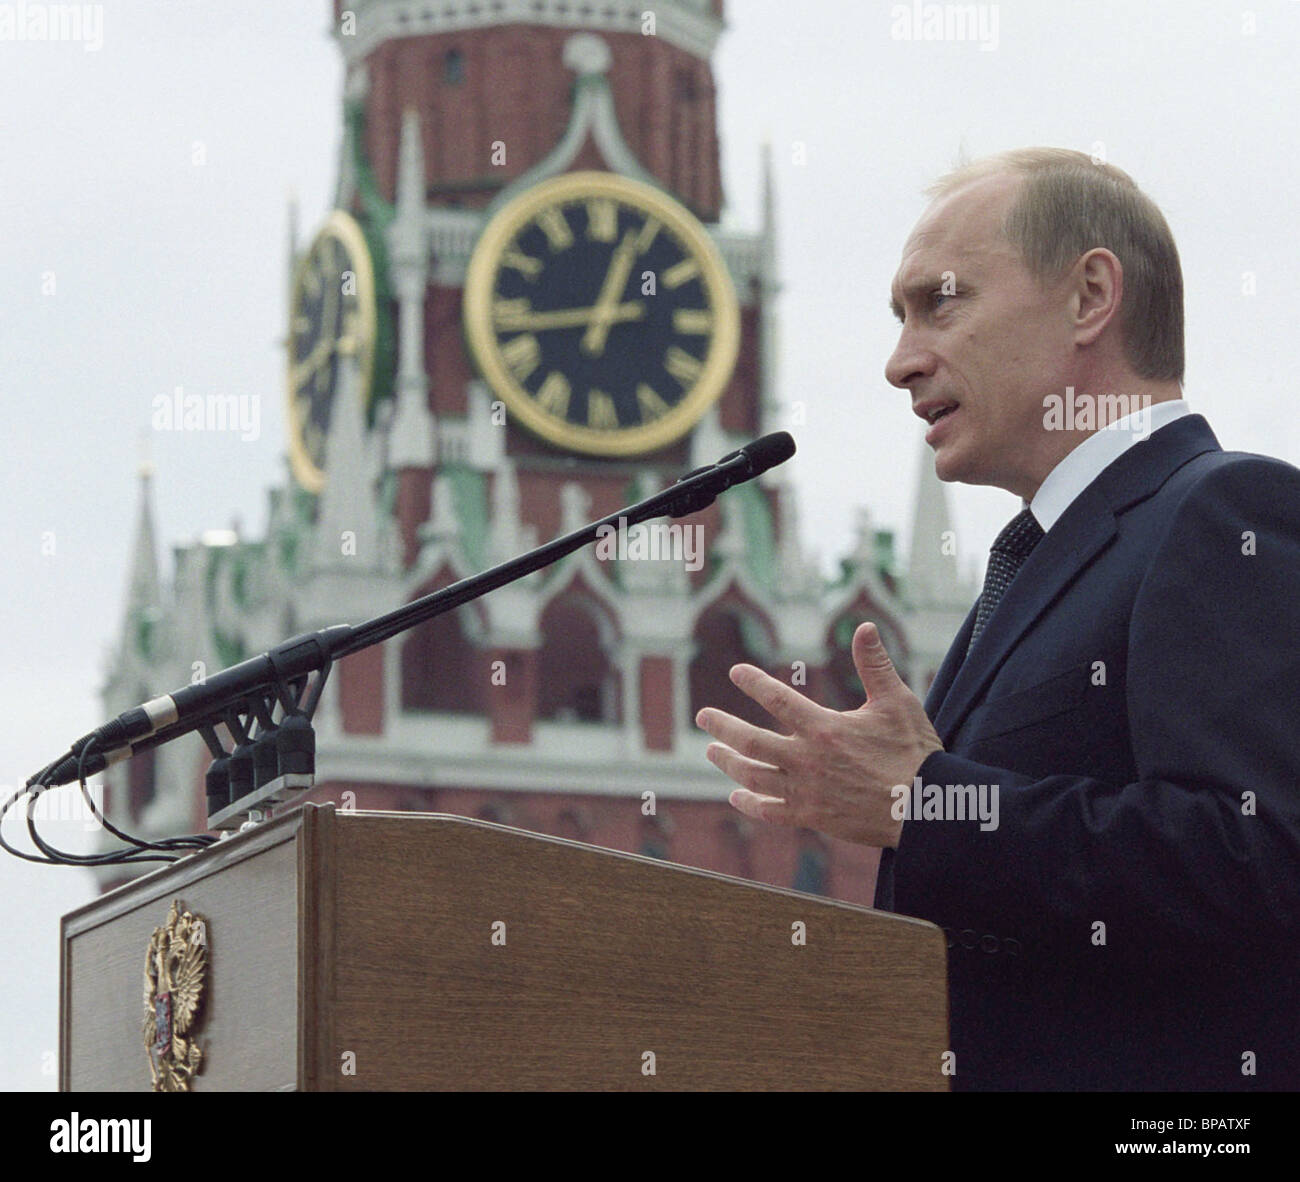 Putin addresses participants in festivities on occasion of Russia Day - Stock Image